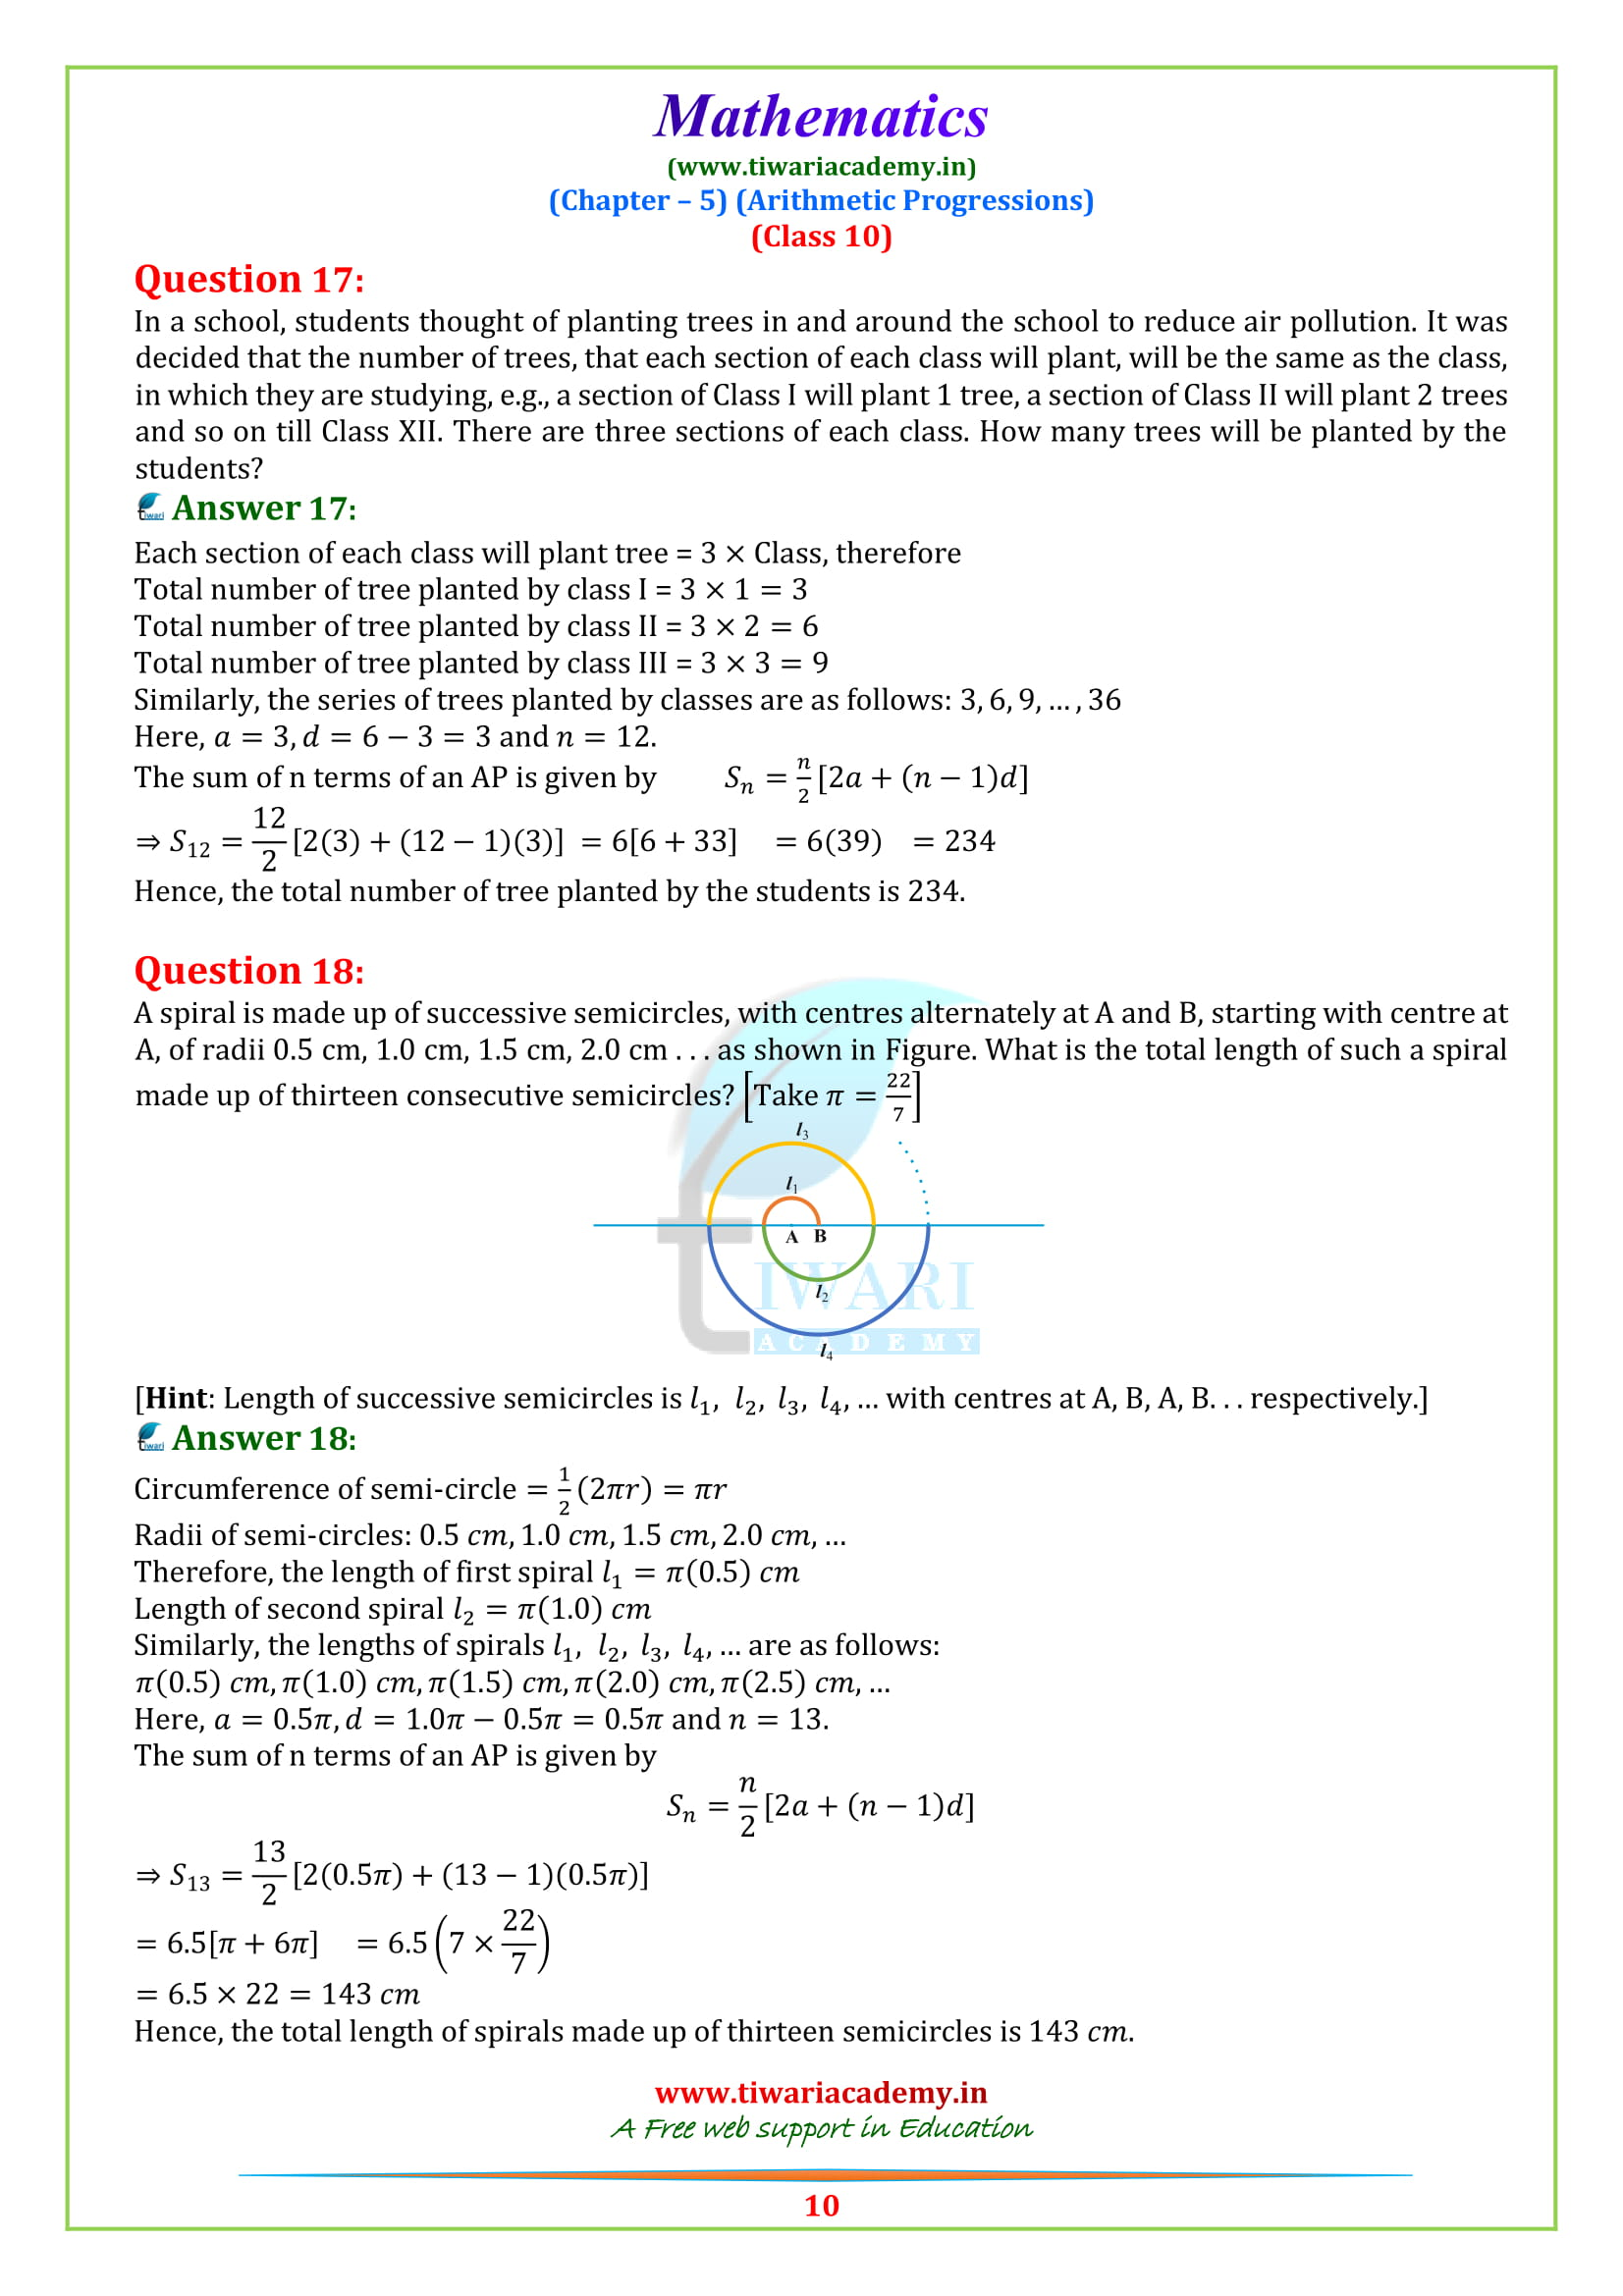 NCERT Sols for class 10 Maths exercise 5.3 for high school up board